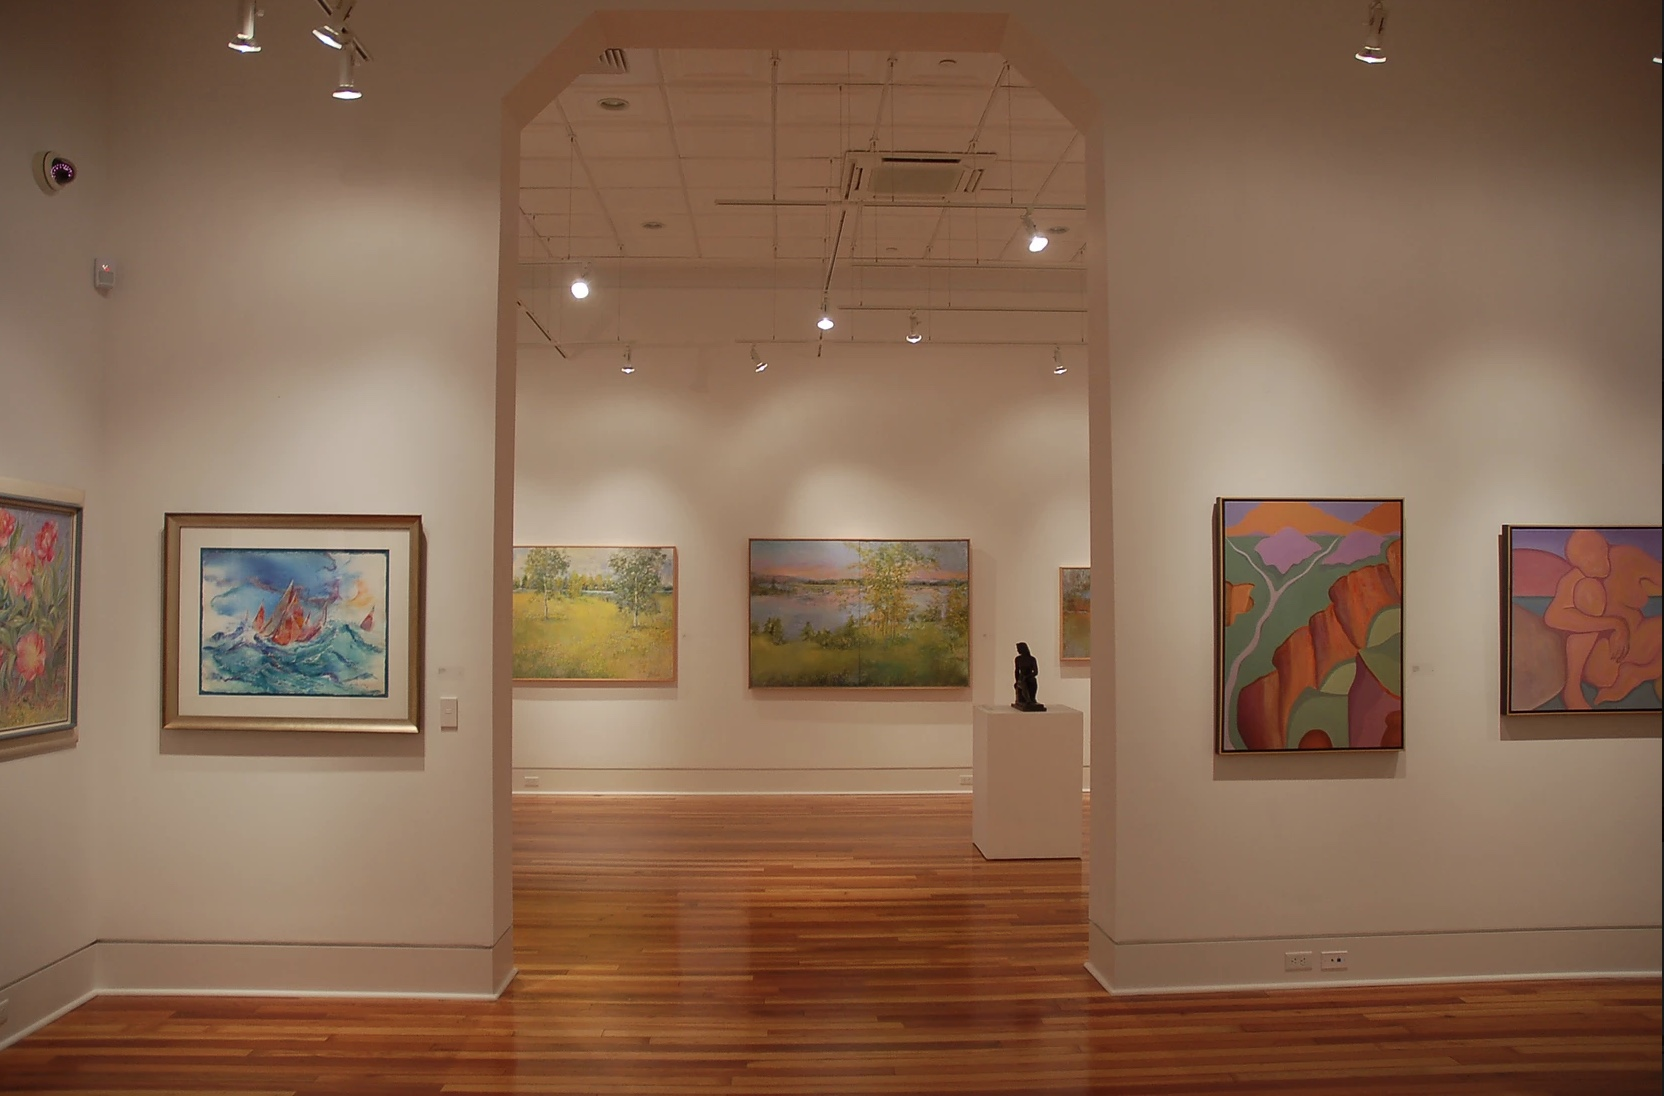 First floor gallery